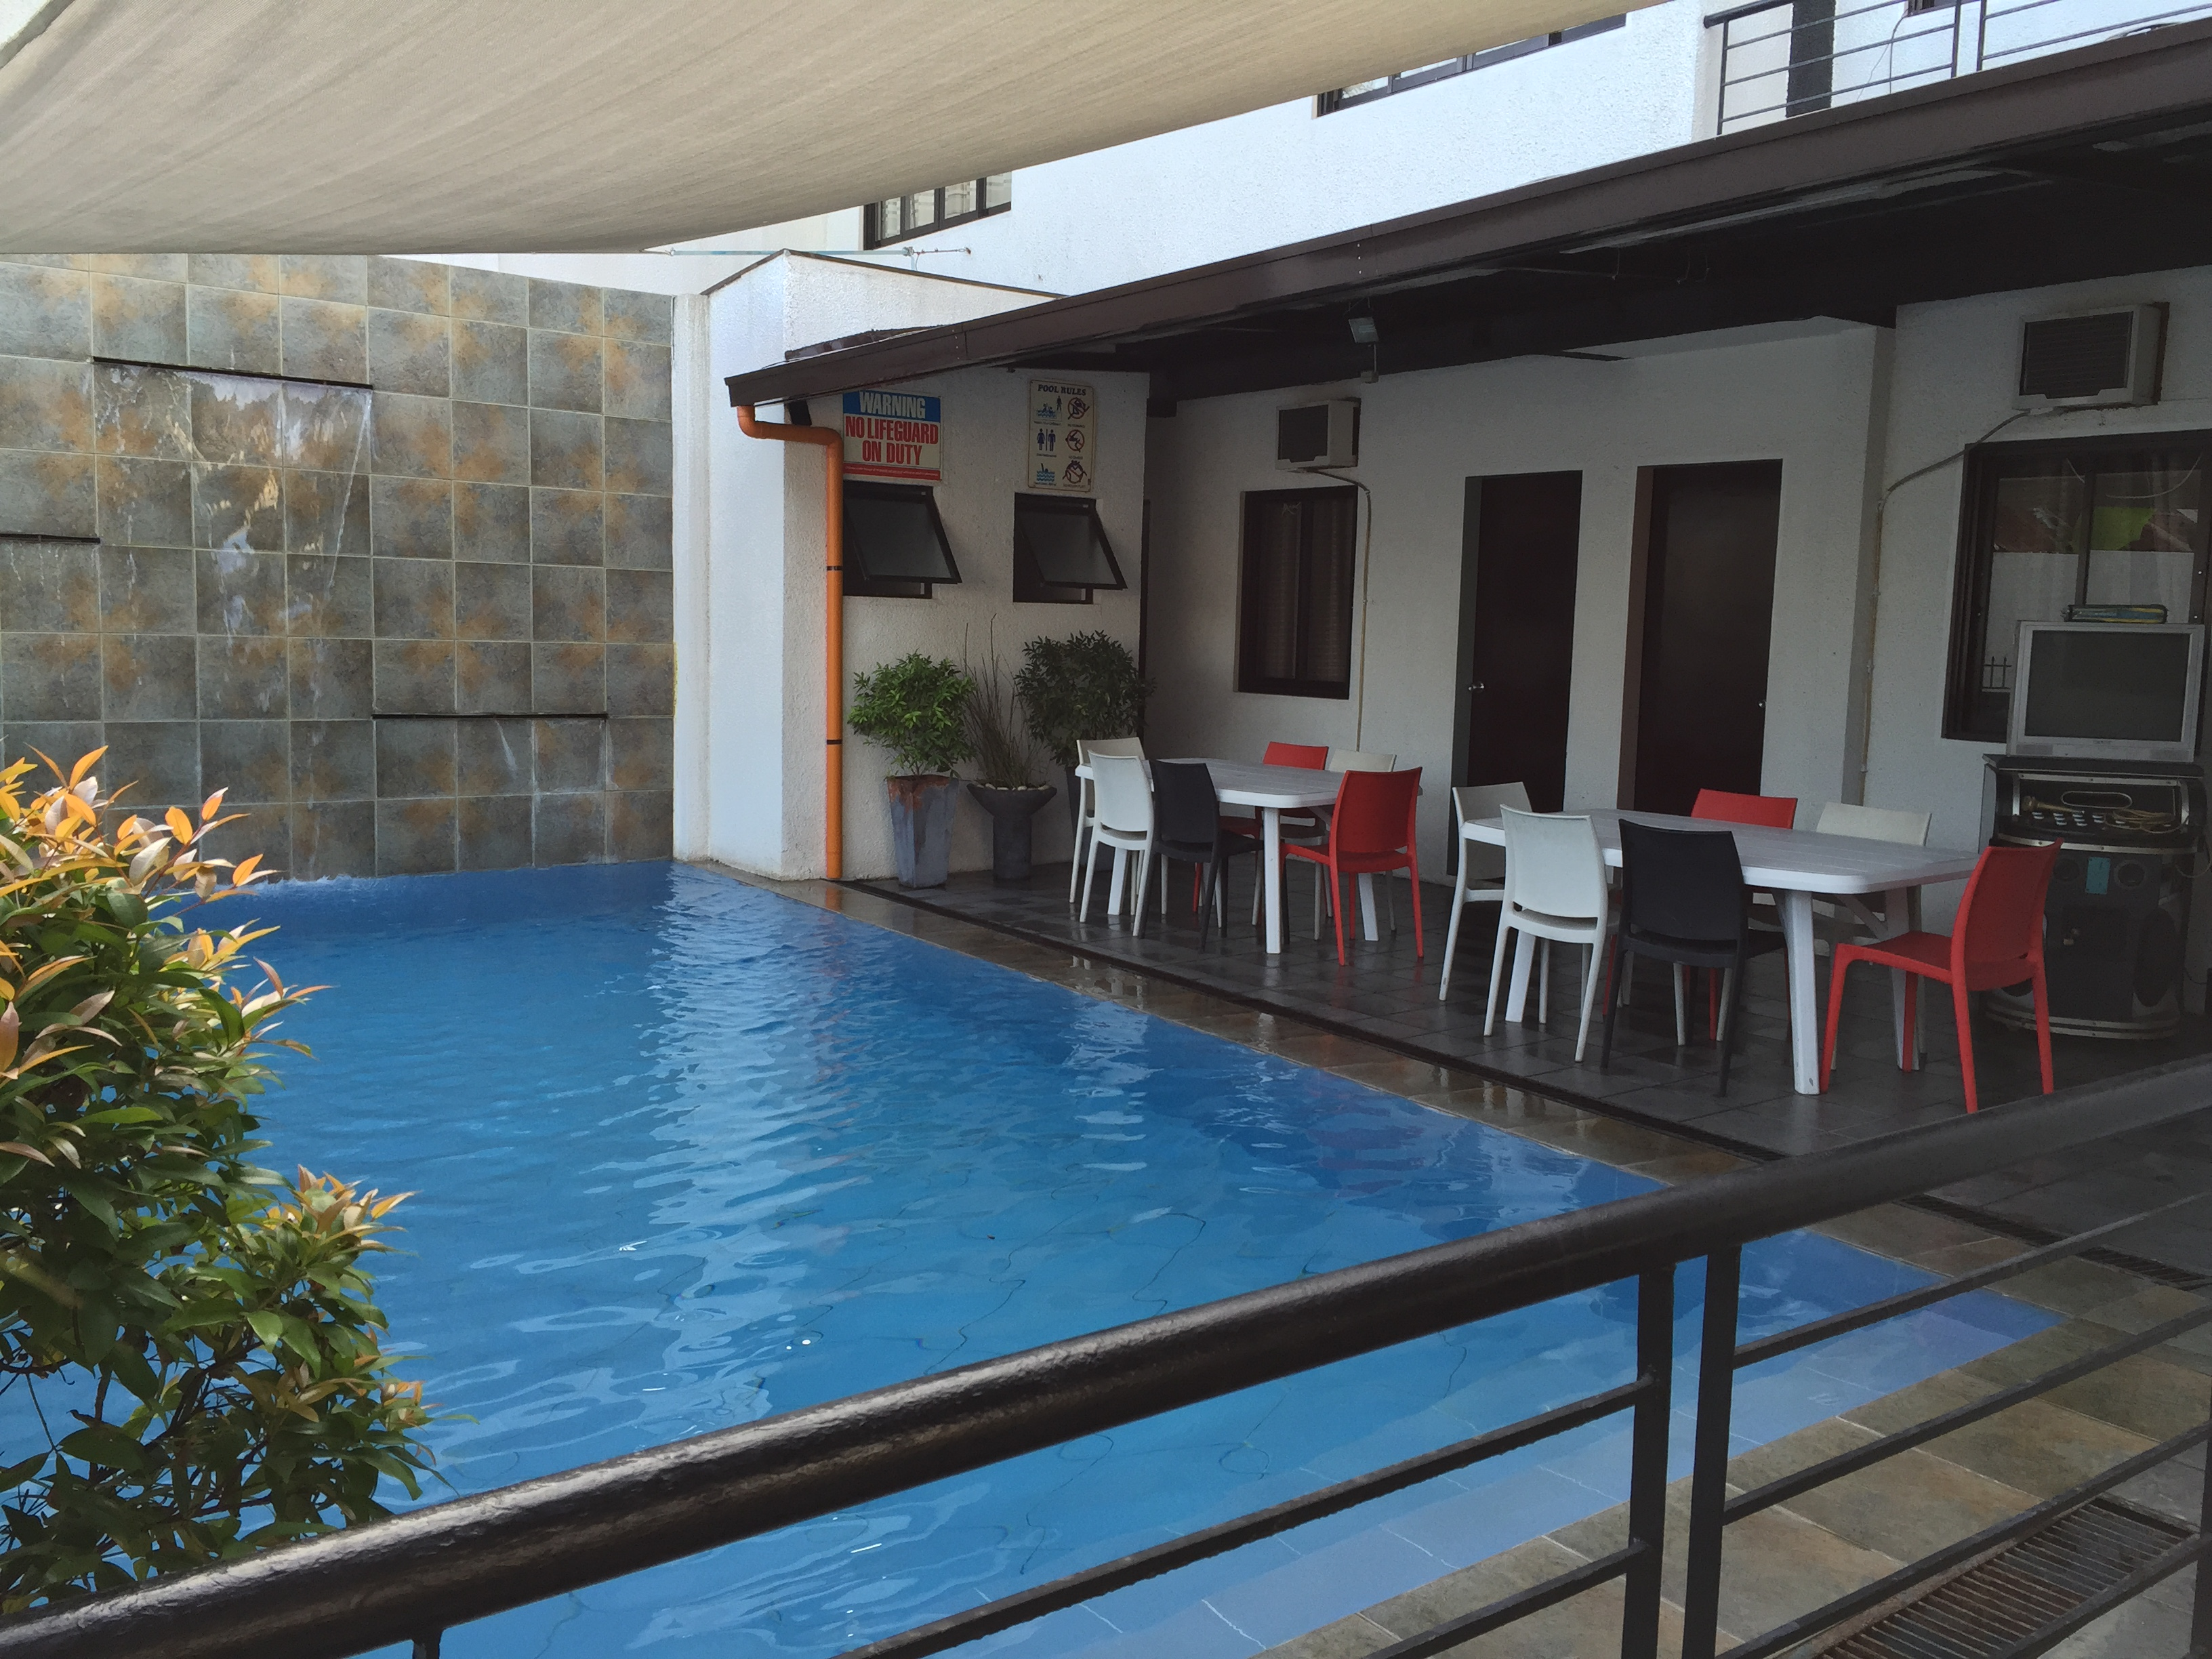 Private pool pansol calamba laguna Private swimming pool for rent in cavite